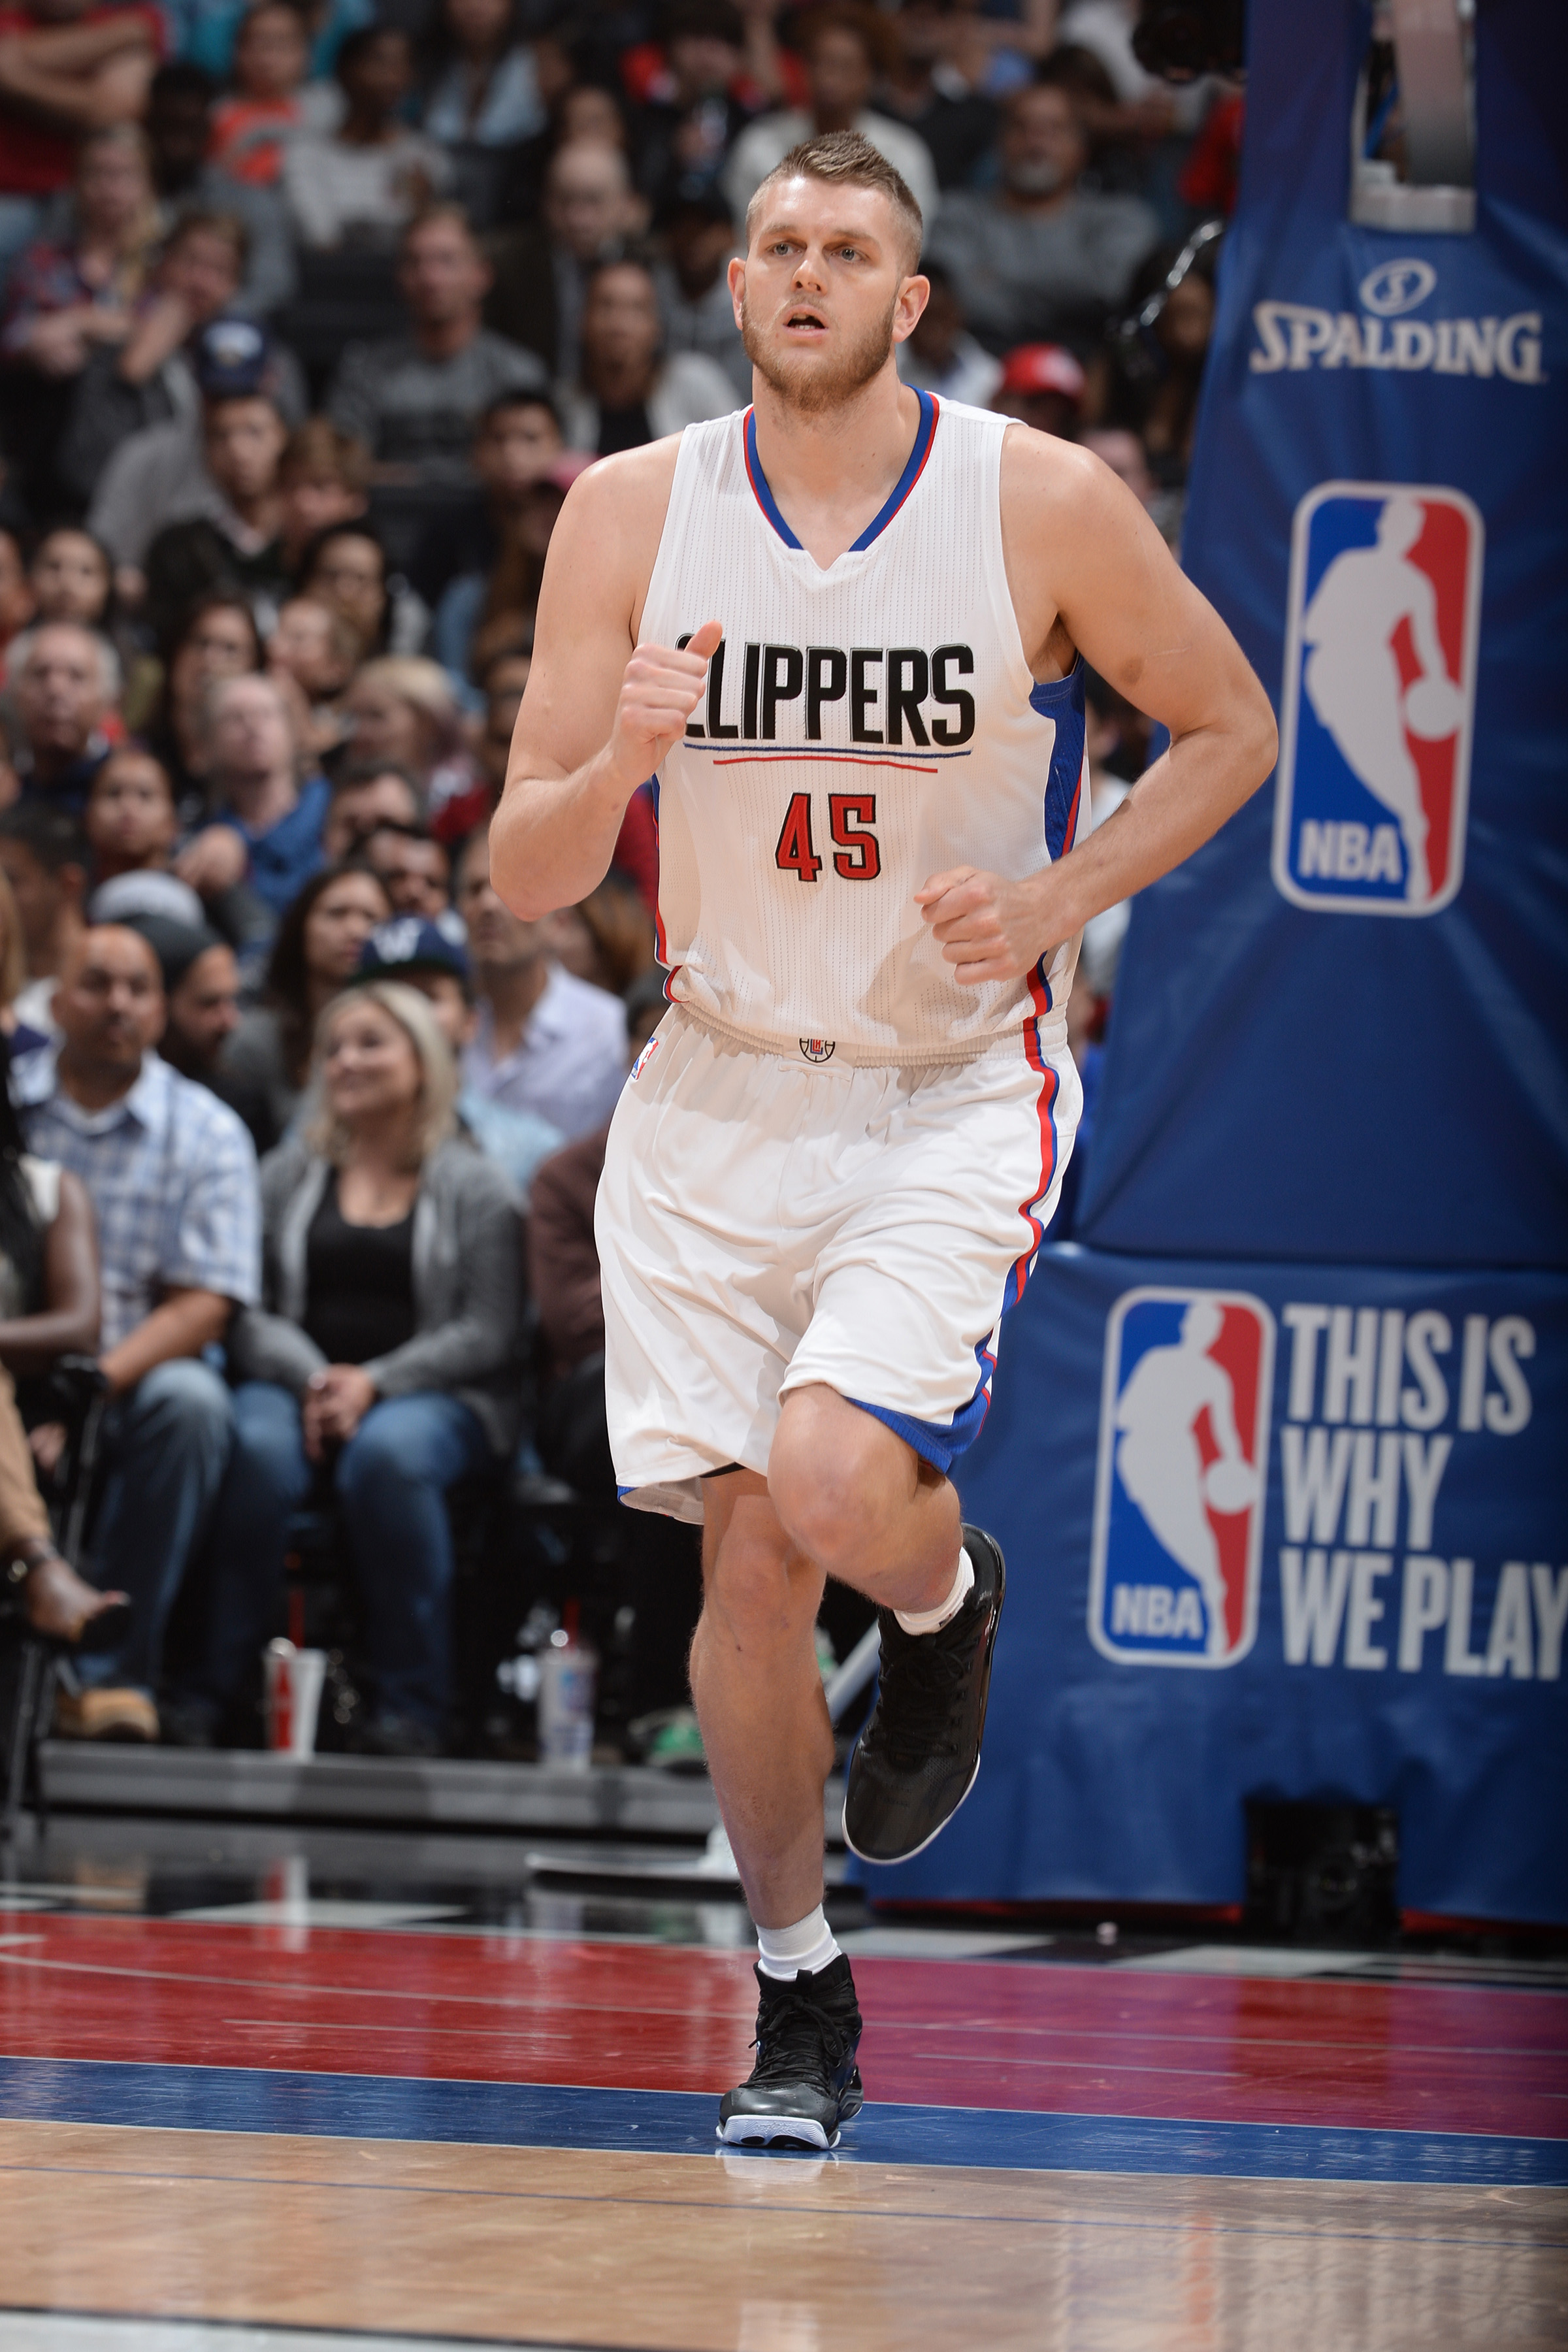 LOS ANGELES, CA - APRIL 12: Cole Aldrich #45 of the Los Angeles Clippers is seen against the Memphis Grizzlies  on April 12, 2016 at STAPLES Center in Los Angeles, California. (Photo by Andrew D. Bernstein/NBAE via Getty Images)